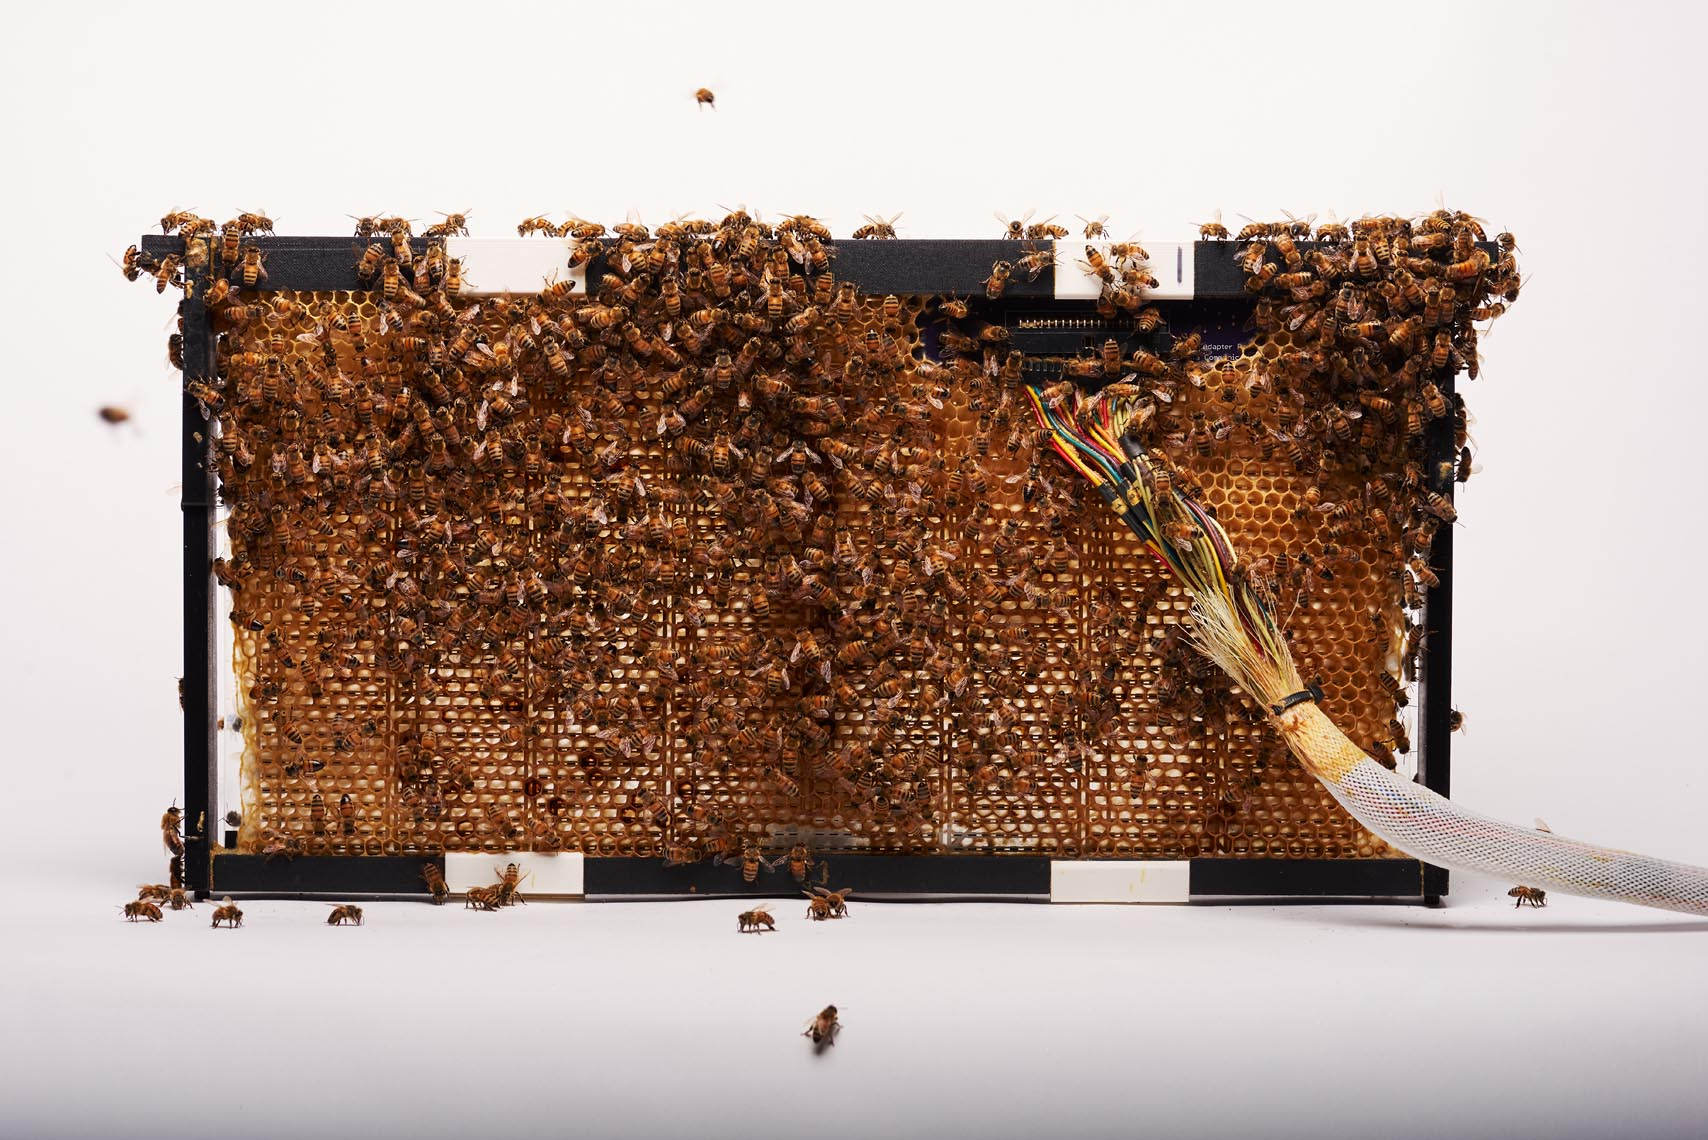 bees converging on techno apiary hive